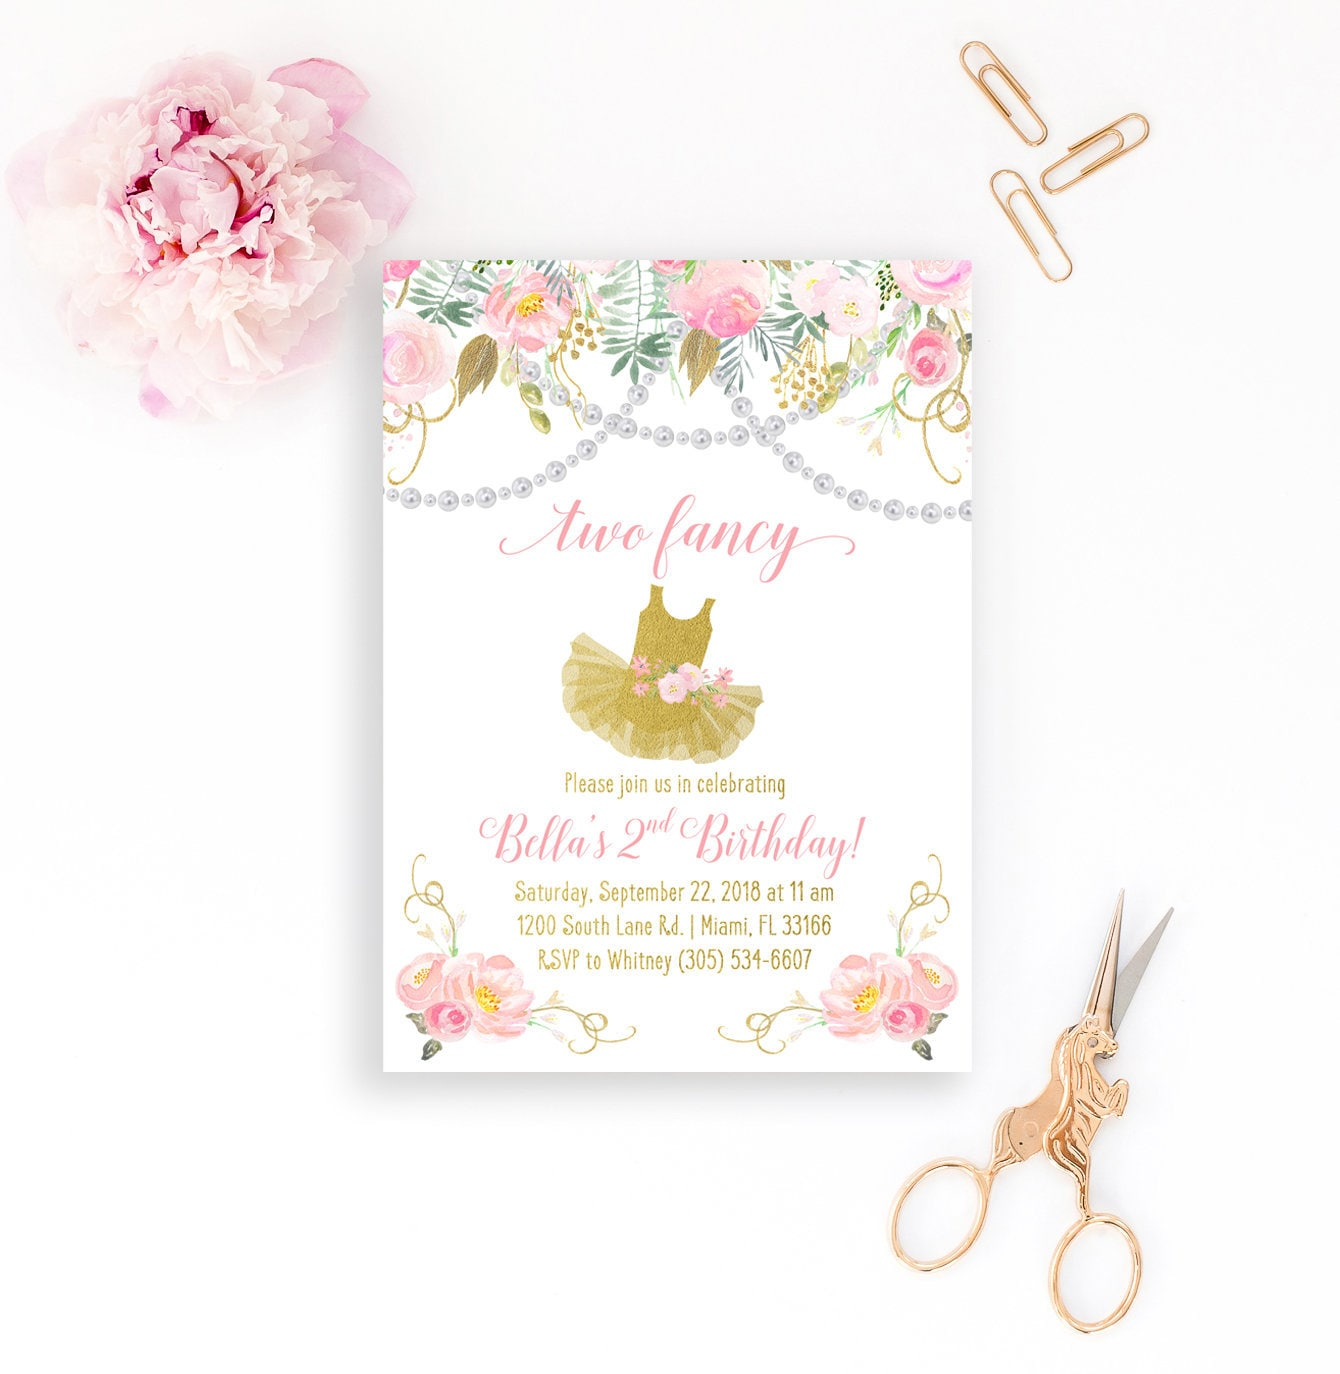 Two fancy birthday invitation second birthday invitation tea party two fancy birthday invitation second birthday invitation tea party birthday invitation pearls invite pink and gold birthday invitation filmwisefo